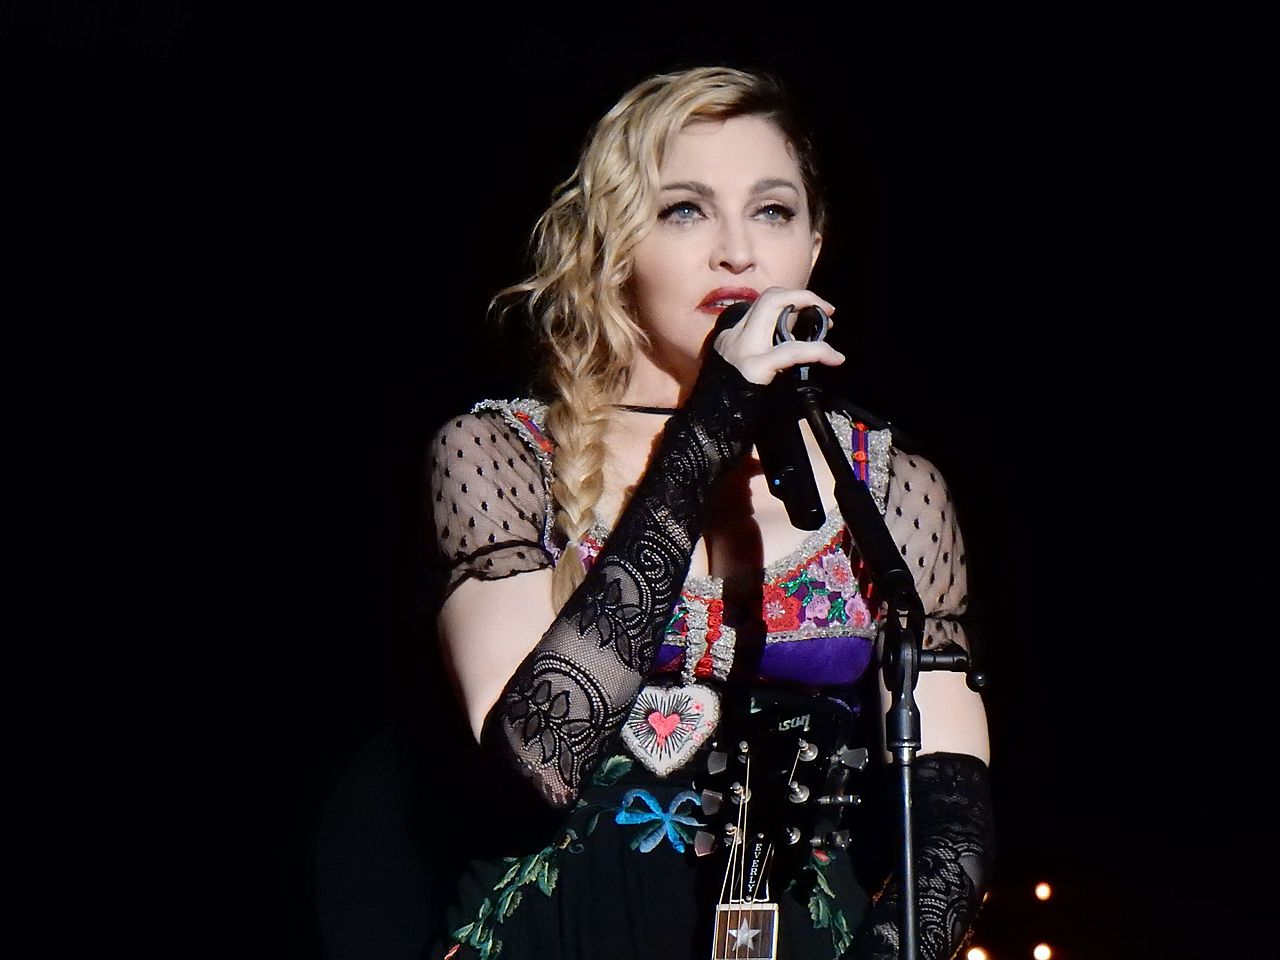 Madonna Rebel Heart Tour 2015 - Stockholm